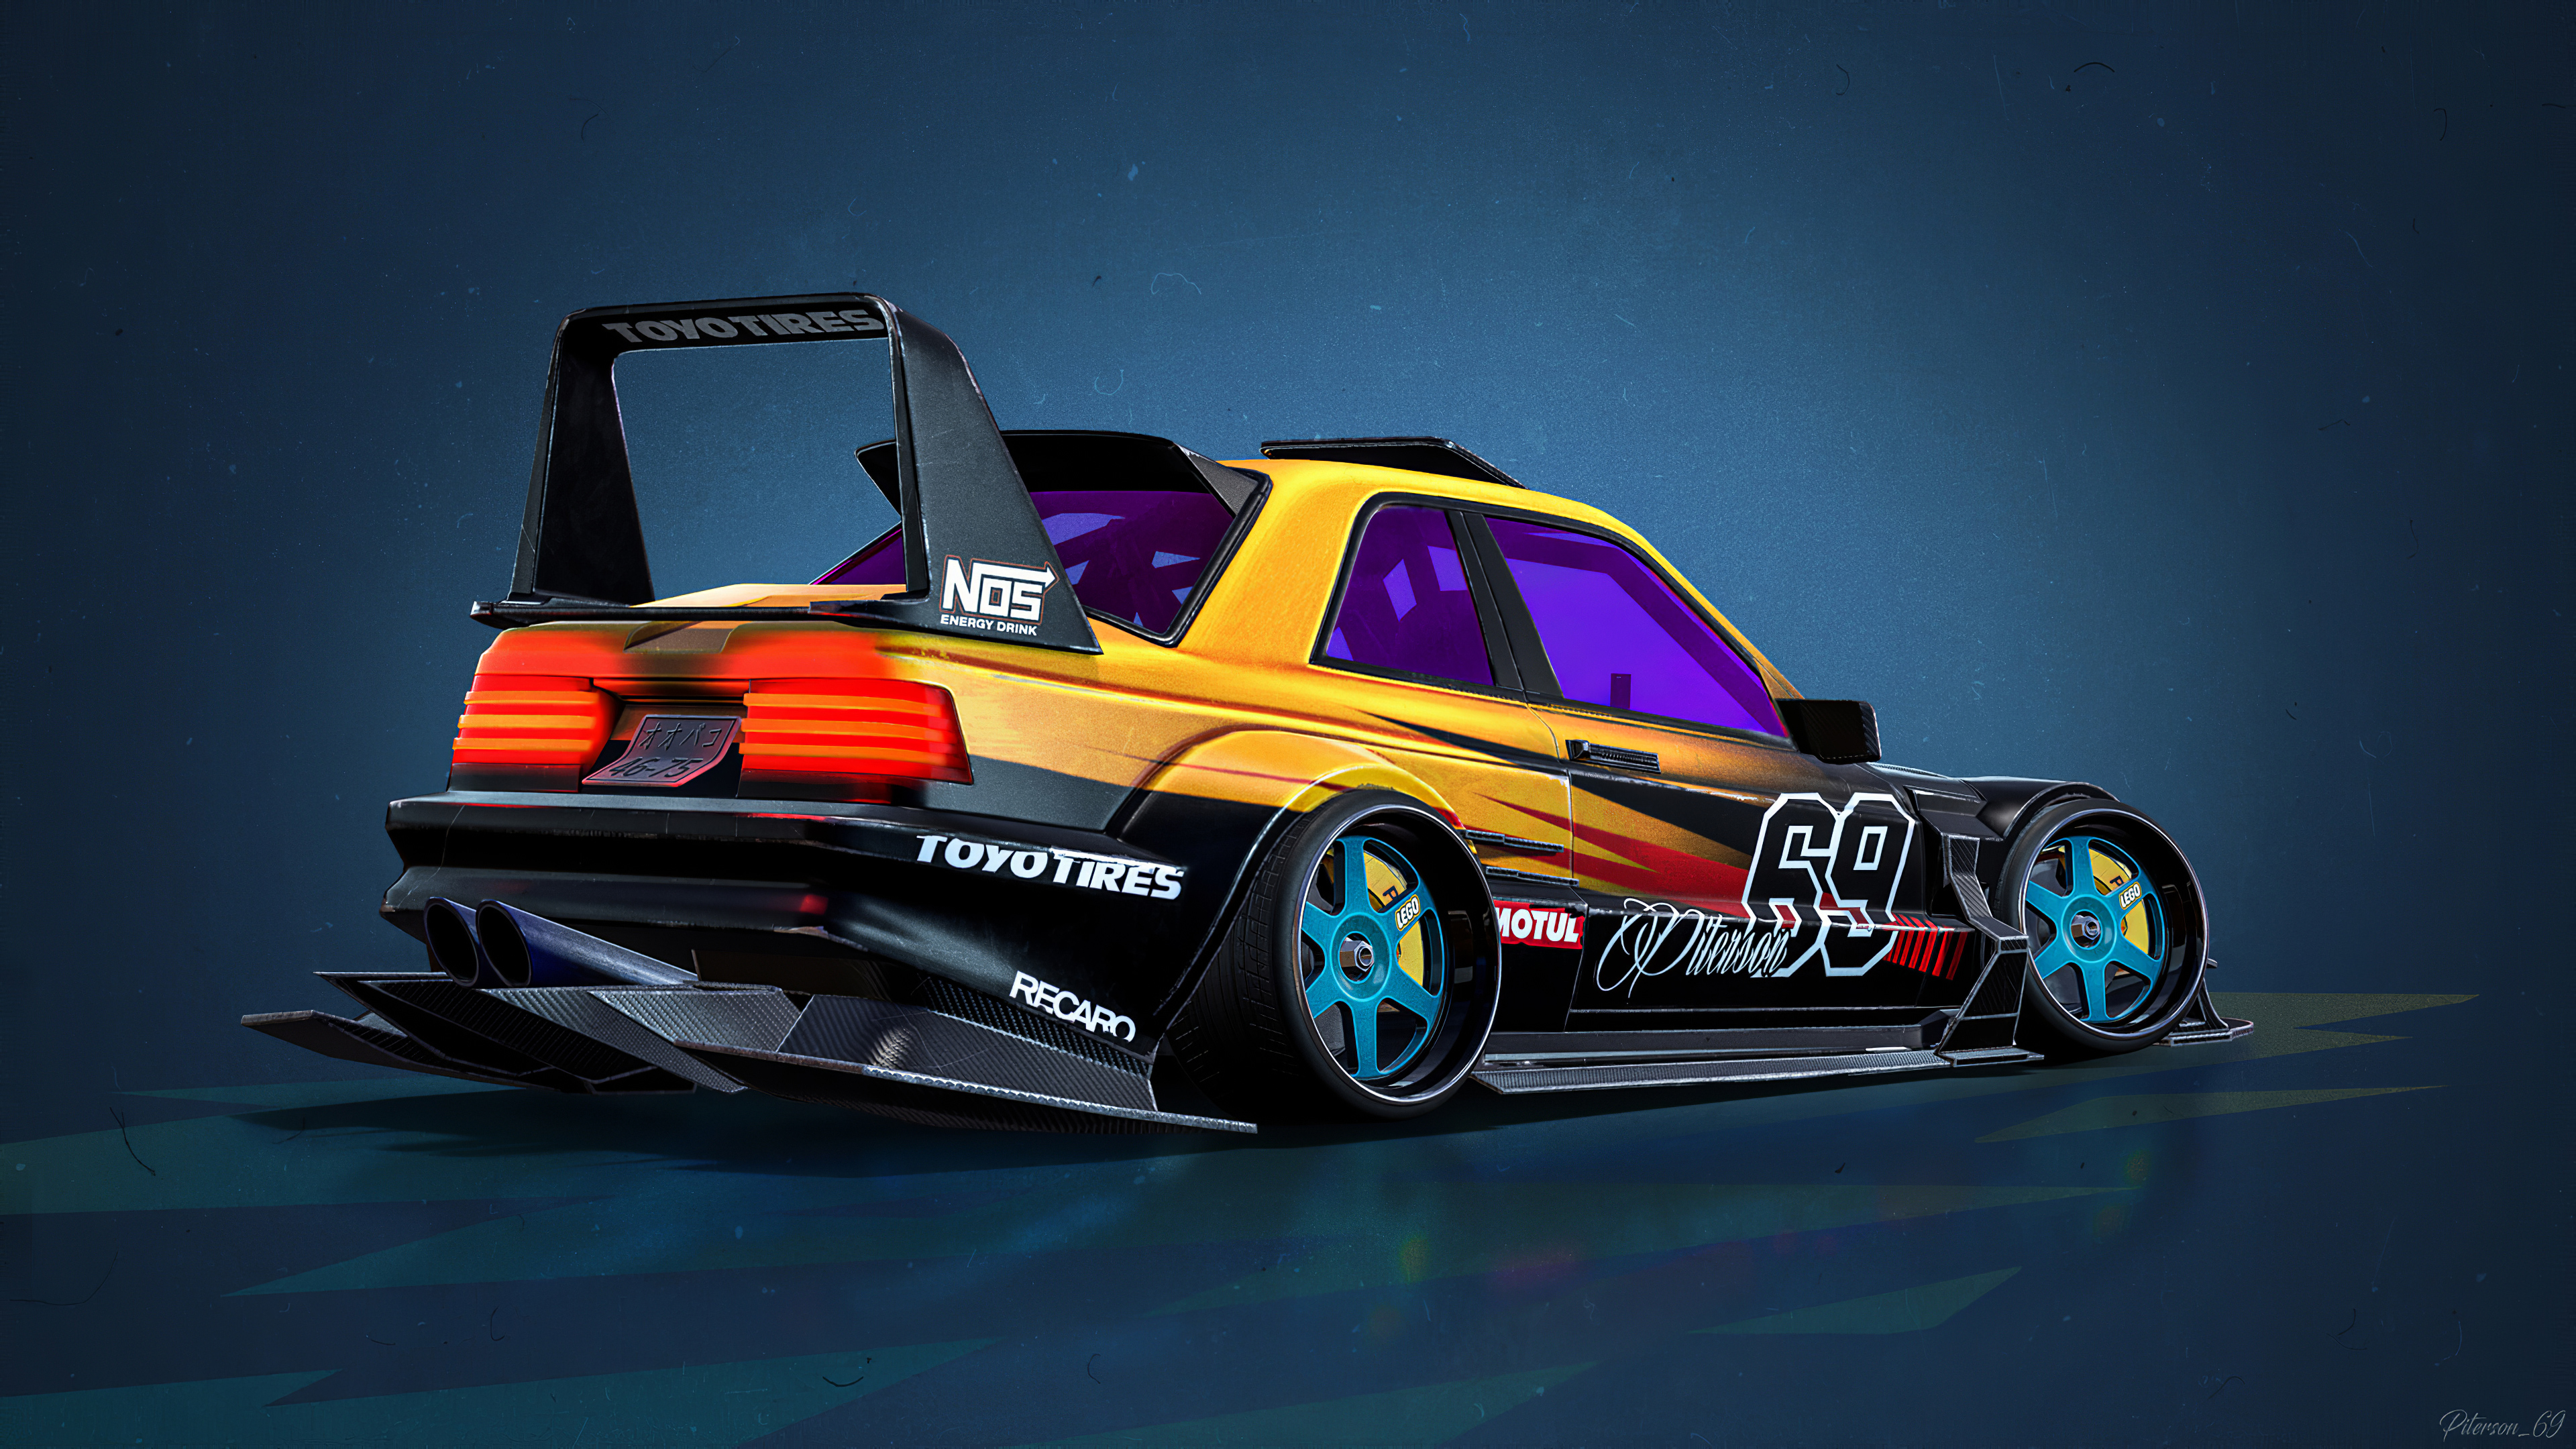 Mercedes Benz E190 Evolution Ii 1990 Cartoon Car Hd Artist 4k Wallpapers Images Backgrounds Photos And Pictures